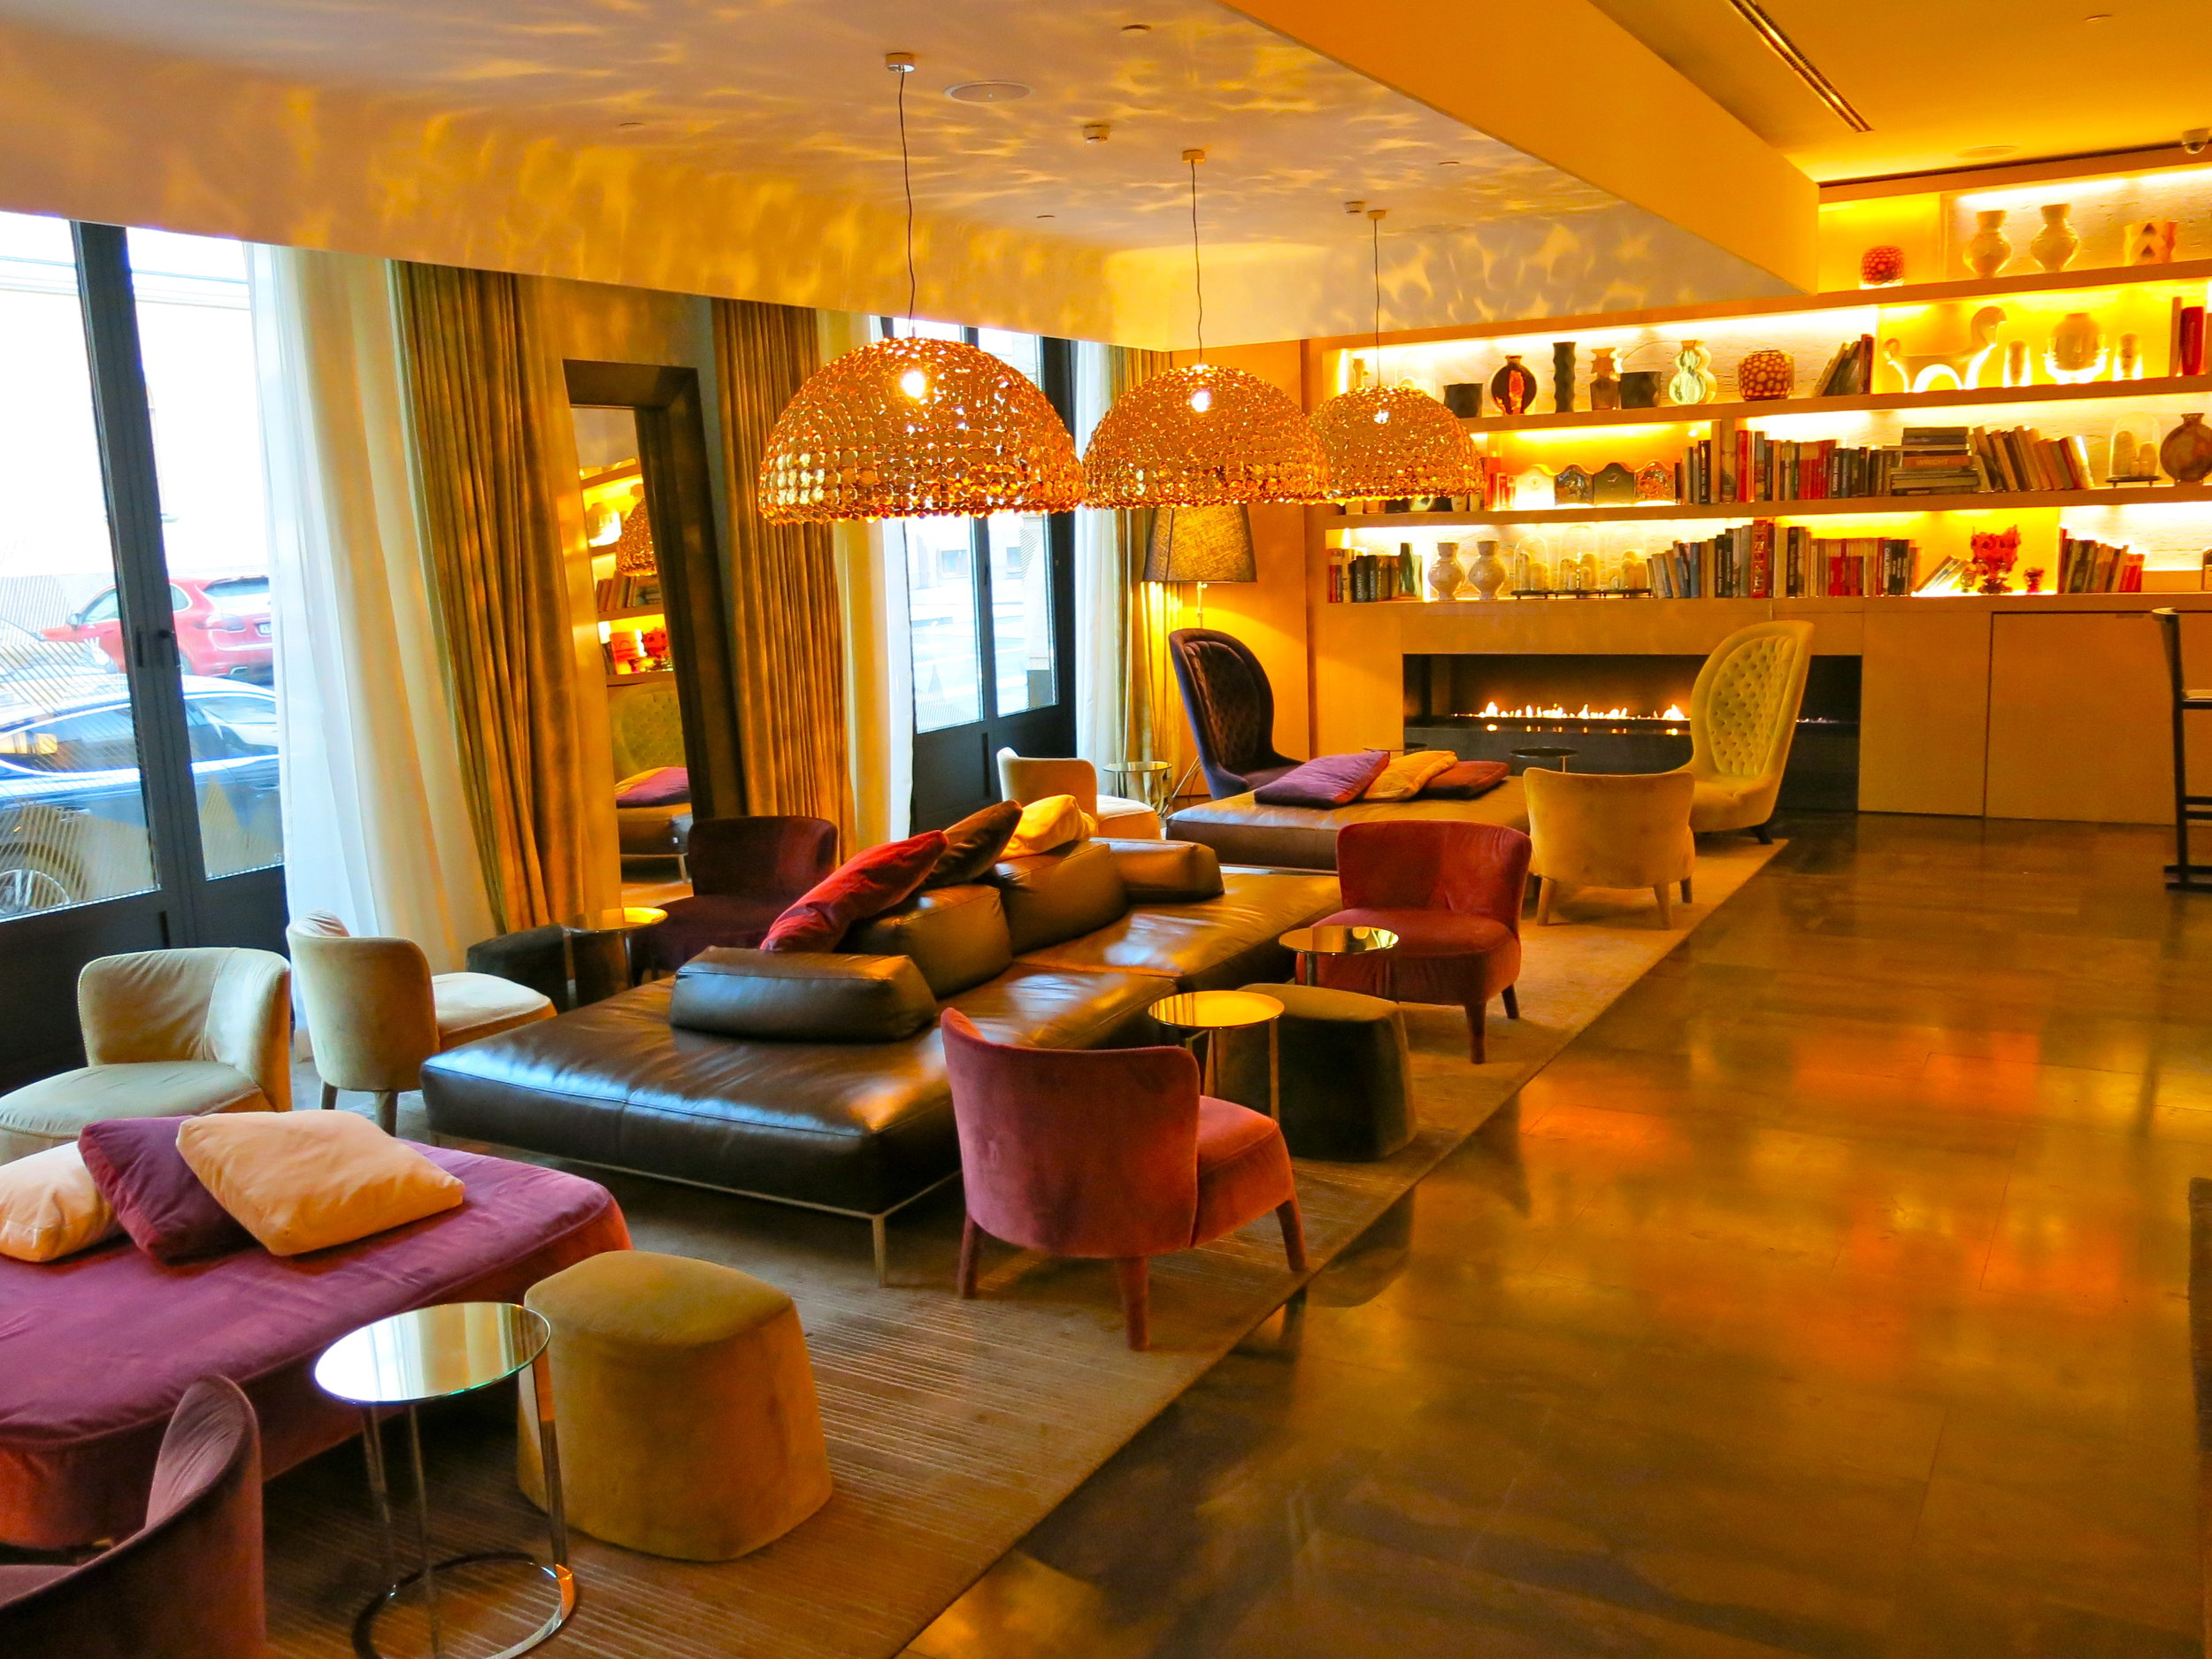 The lobby of the SO Sofitel hotel makes you feel welcomed